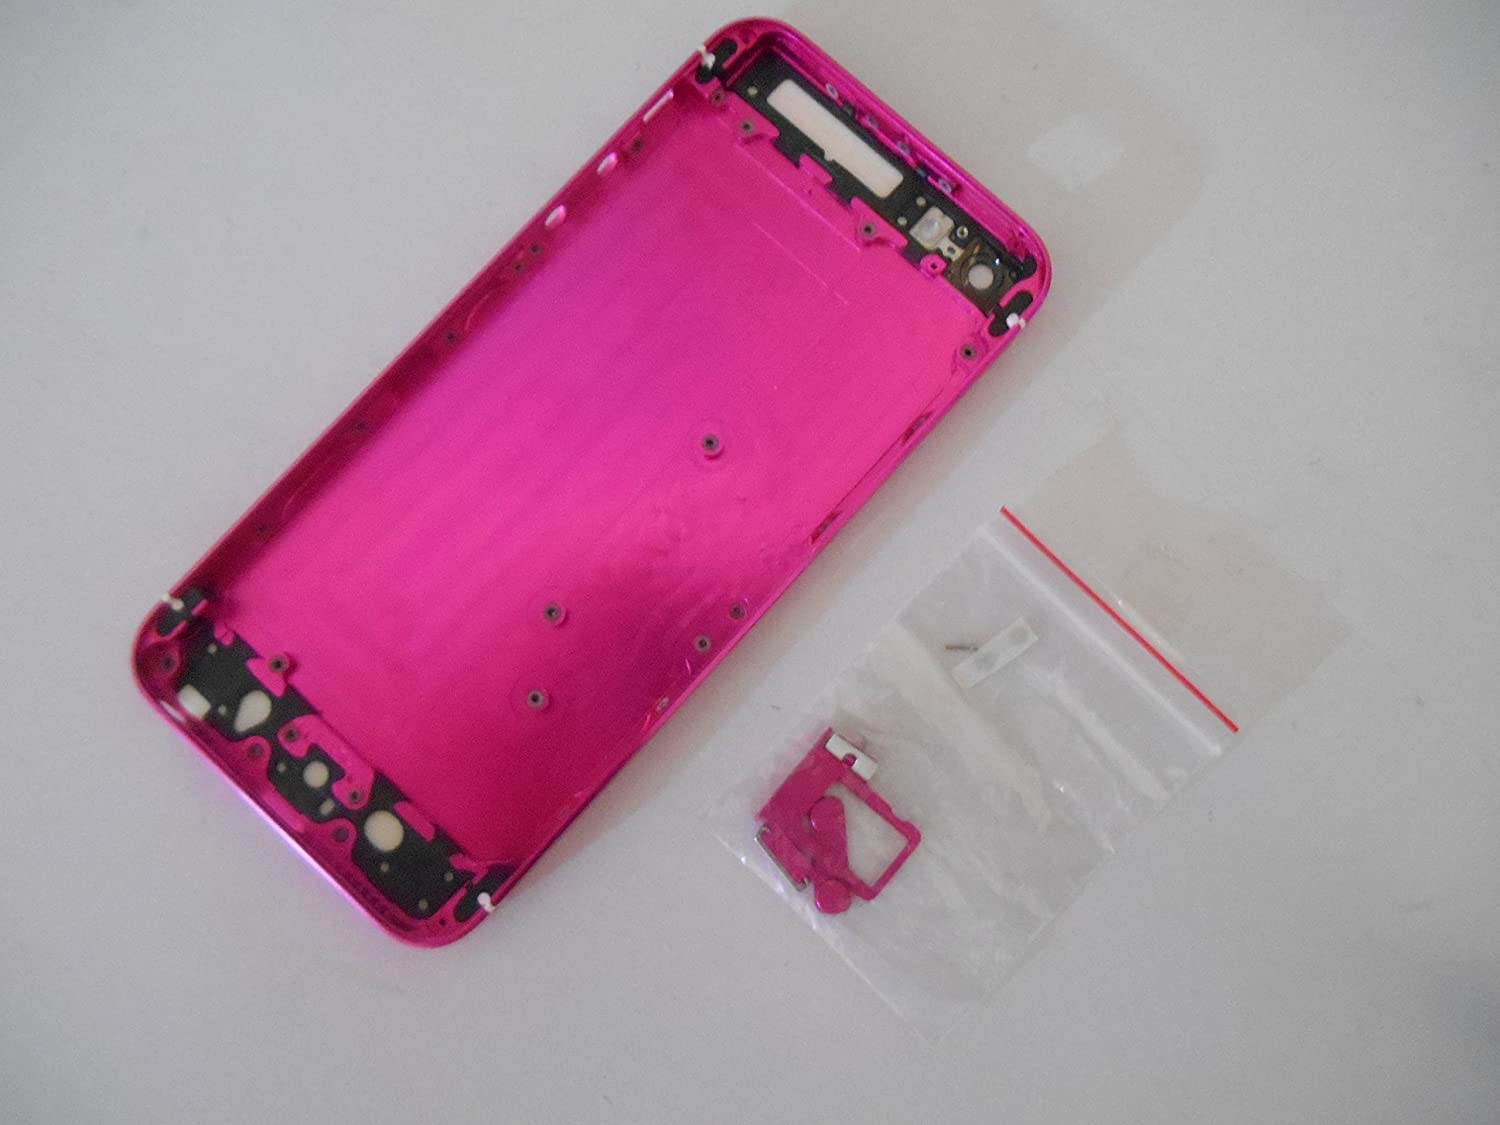 5G HOT PINK Housing iPhone 5 Middle Frame Replacement: Amazon.co.uk ...